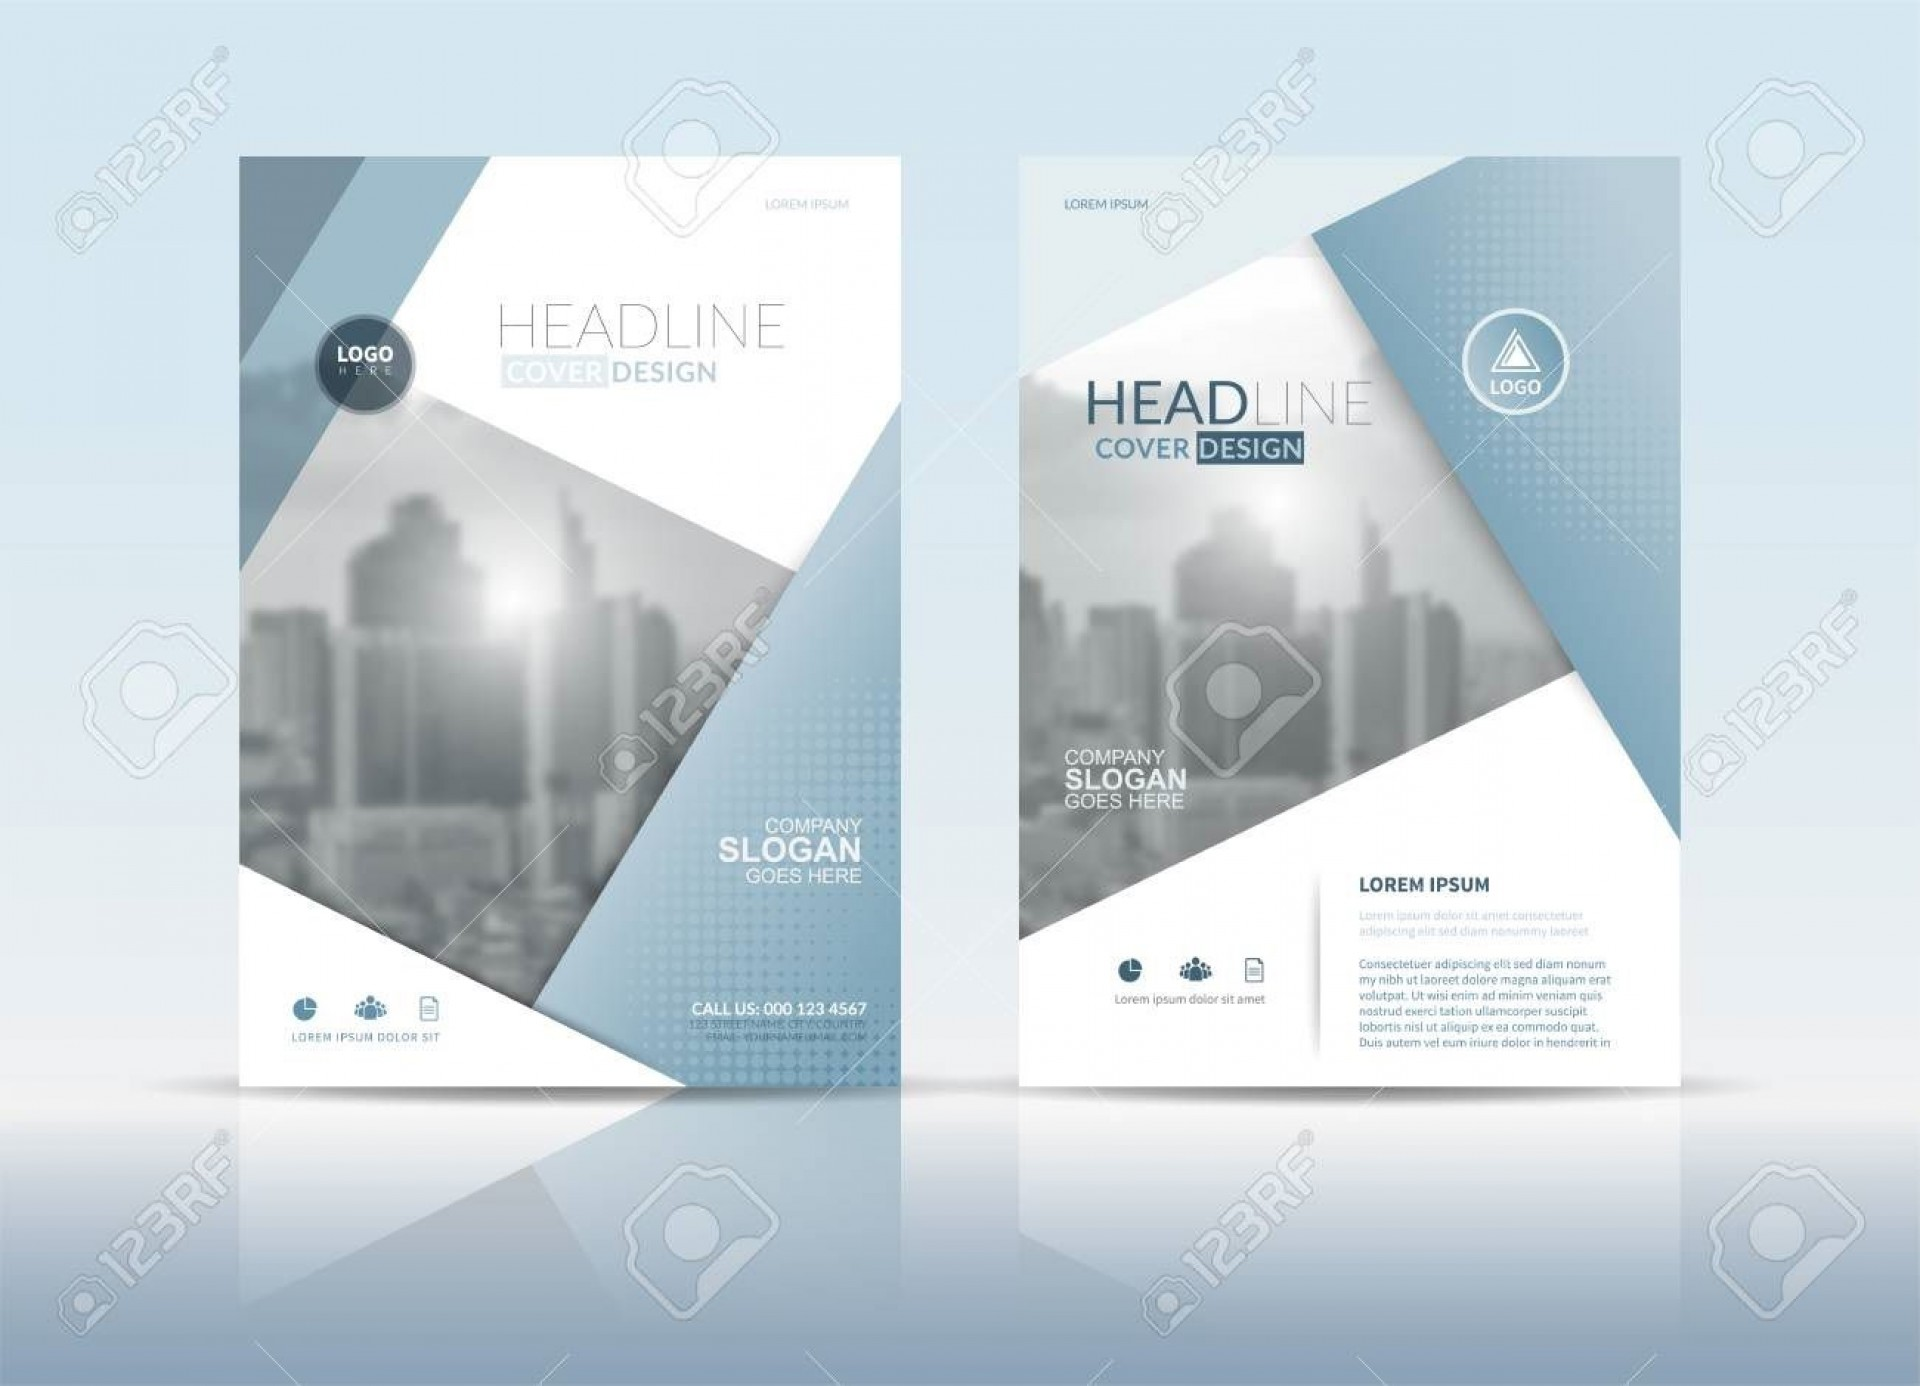 003 Dreaded Free Download Annual Report Cover Design Template Inspiration  Page In Word1920